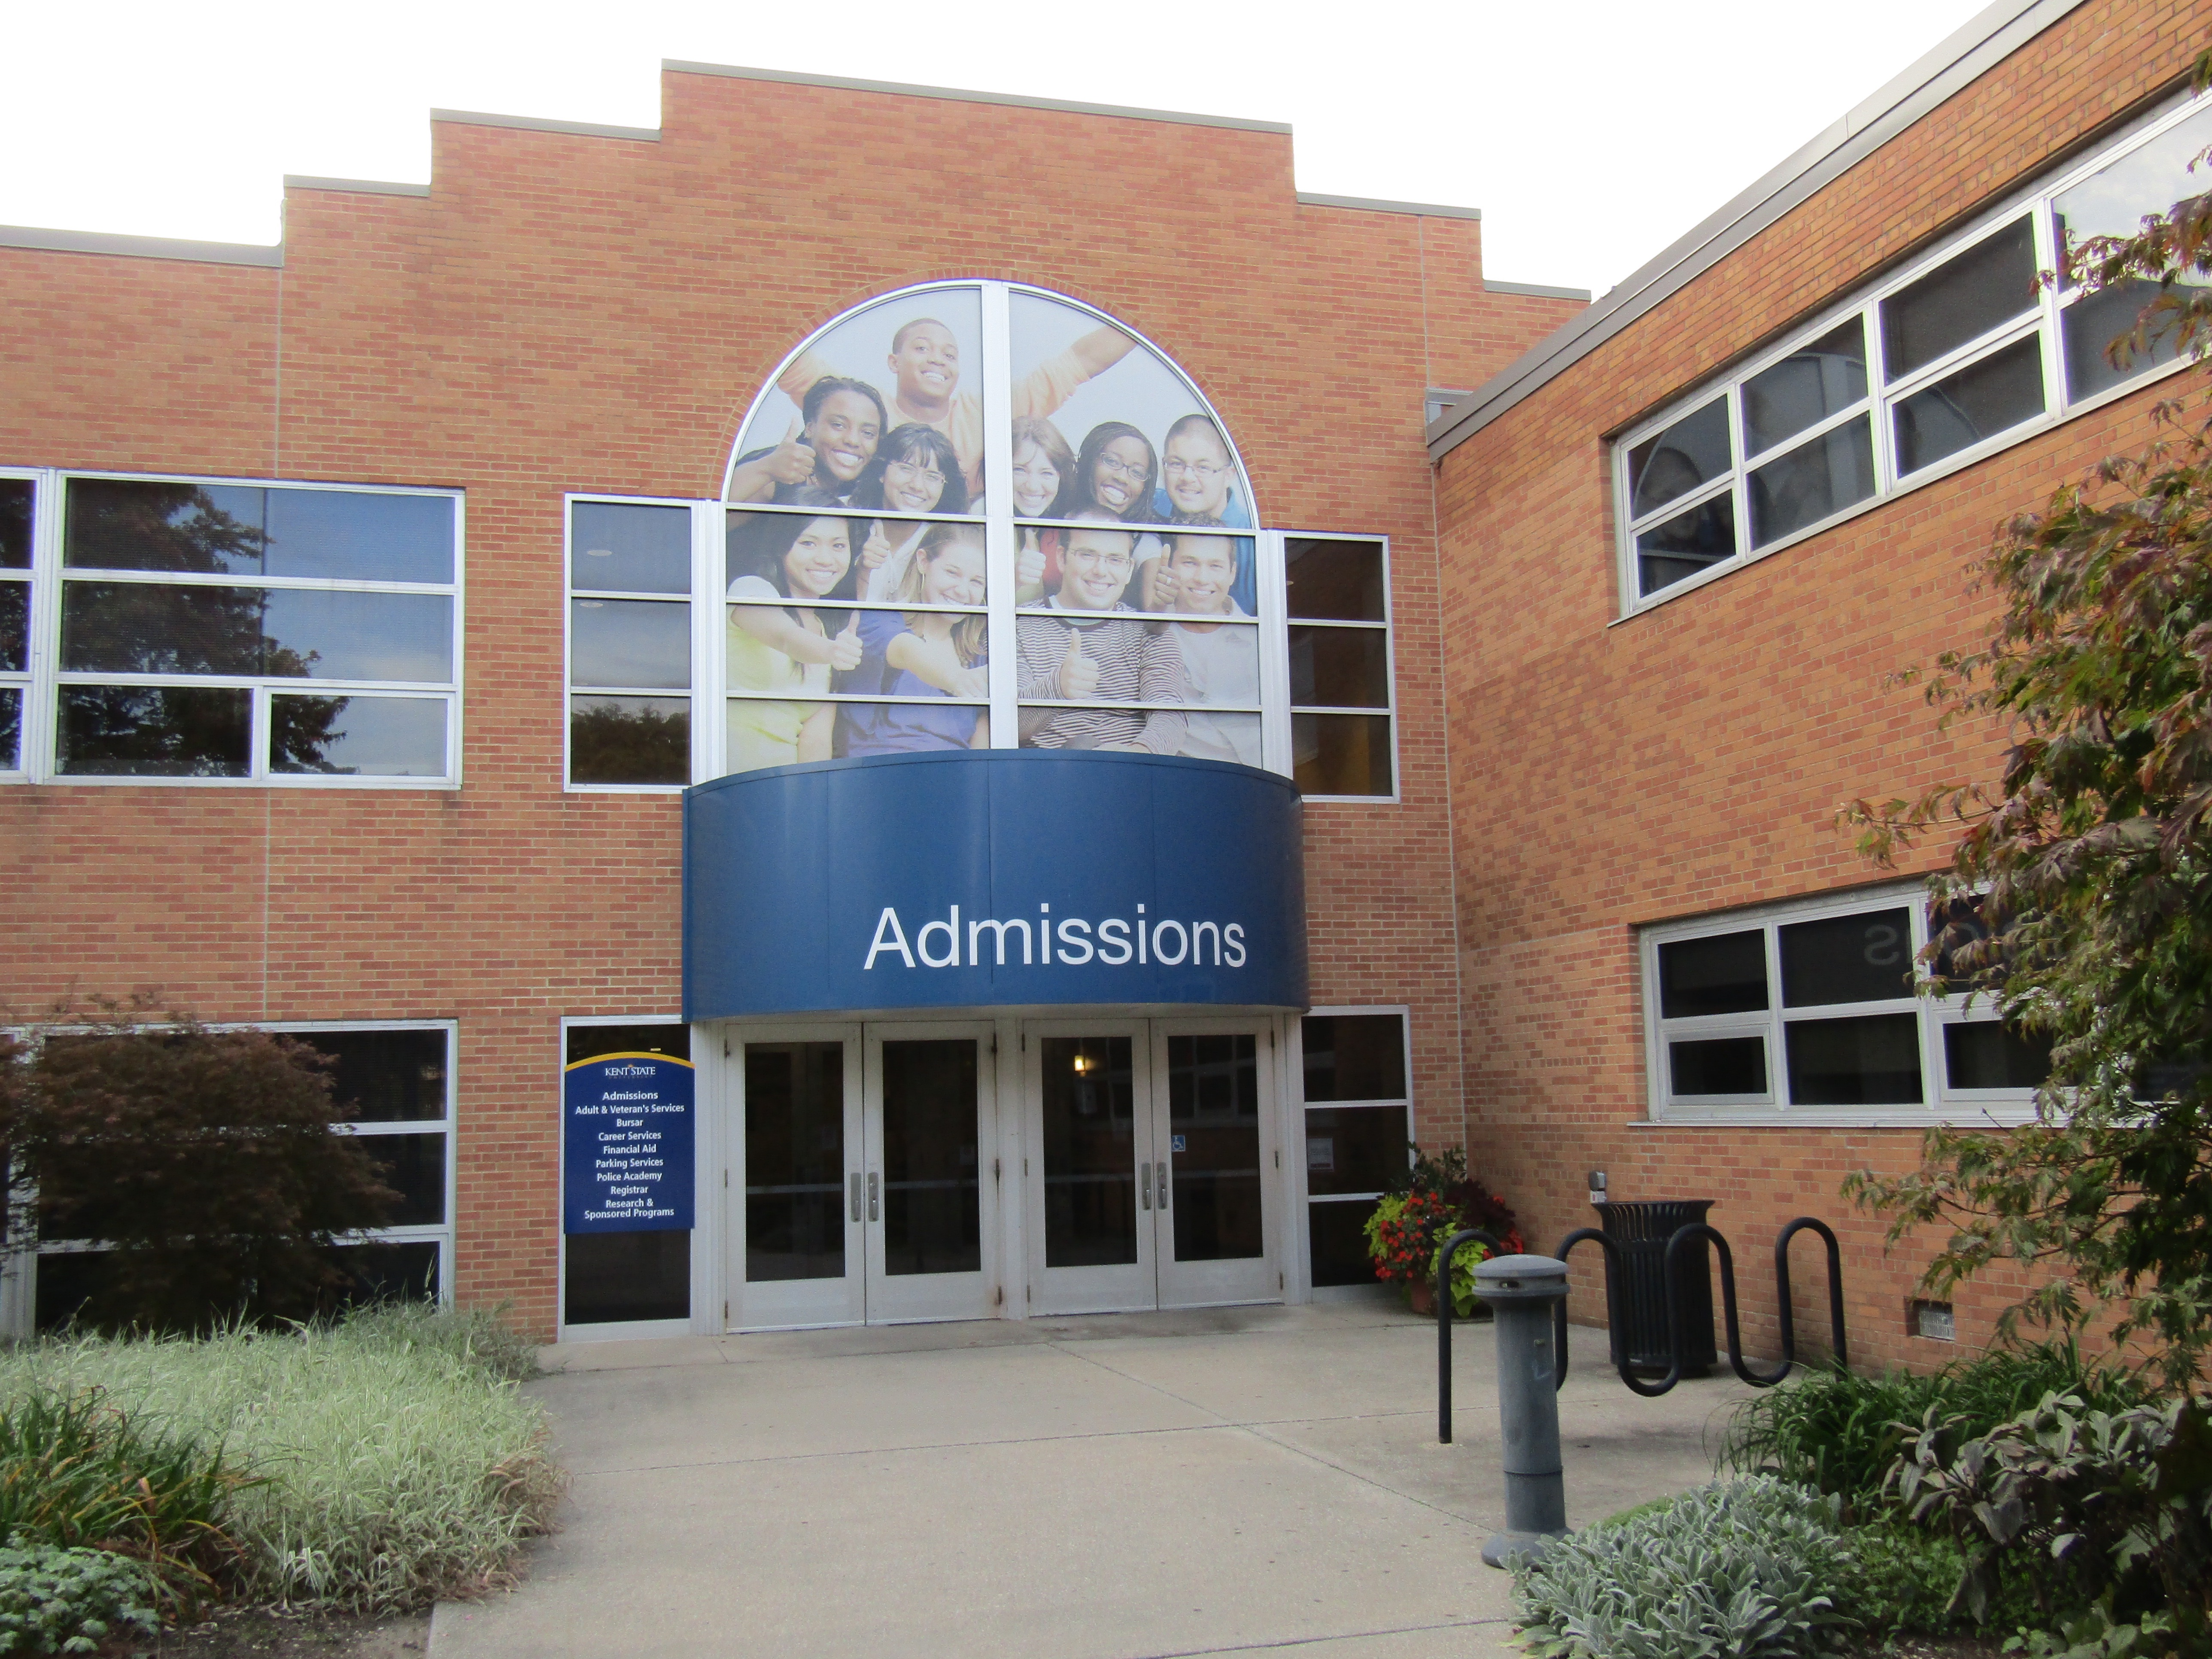 RASP is located on the 2nd floor of the Schwartz Center, up the steps from the Admissions office